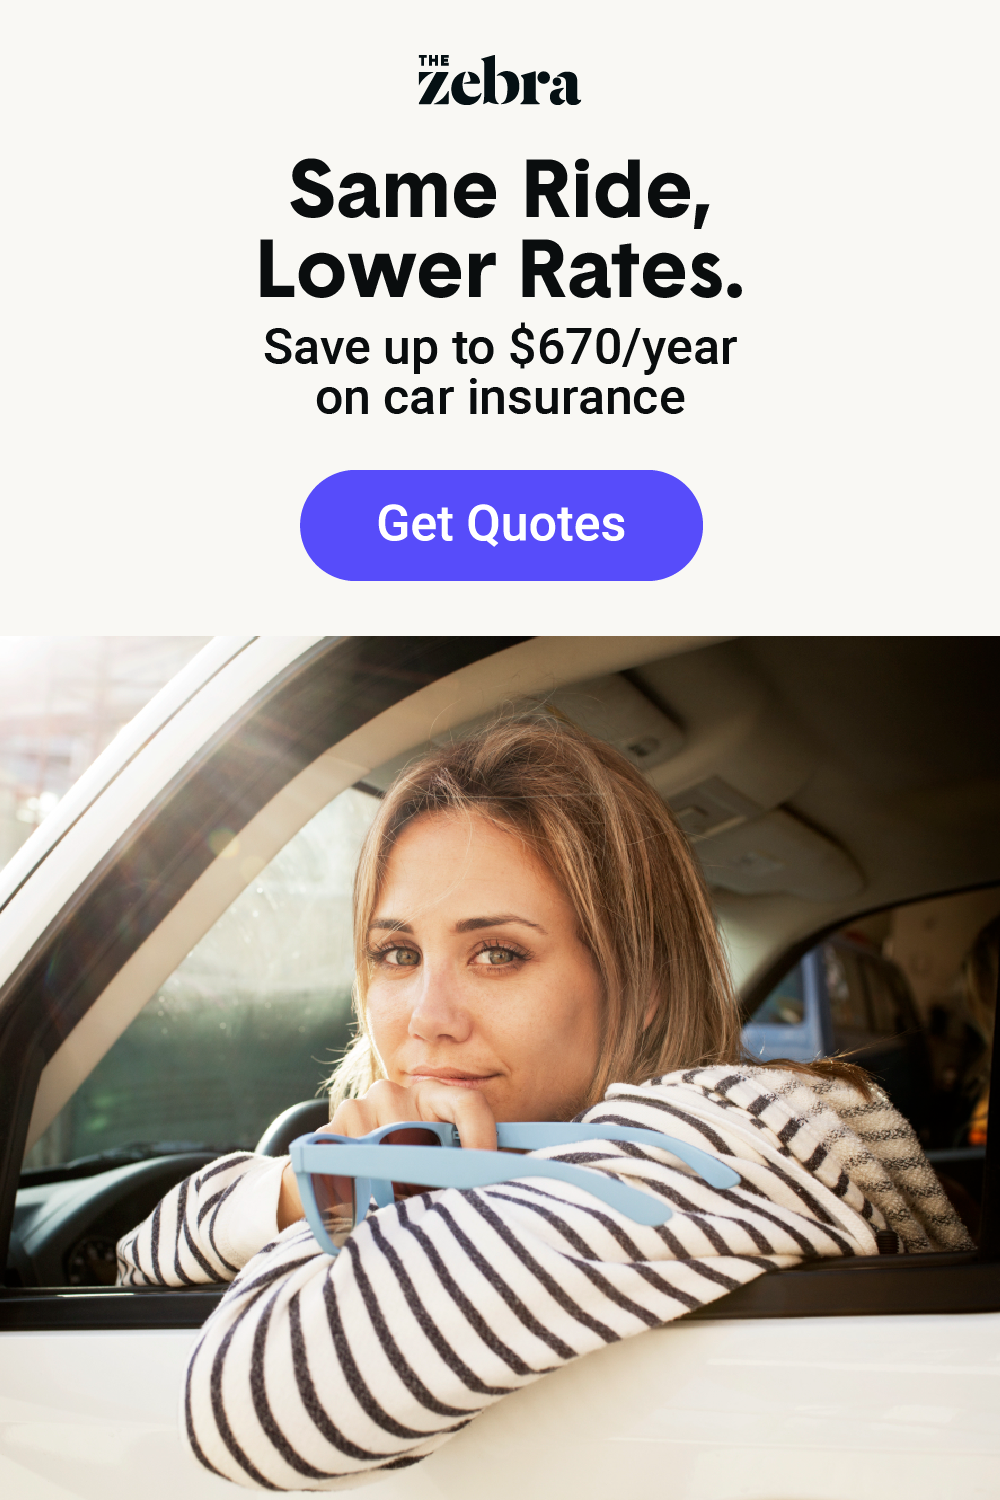 Customers Who Use The Zebra To Compare Auto Insurance Rates Save